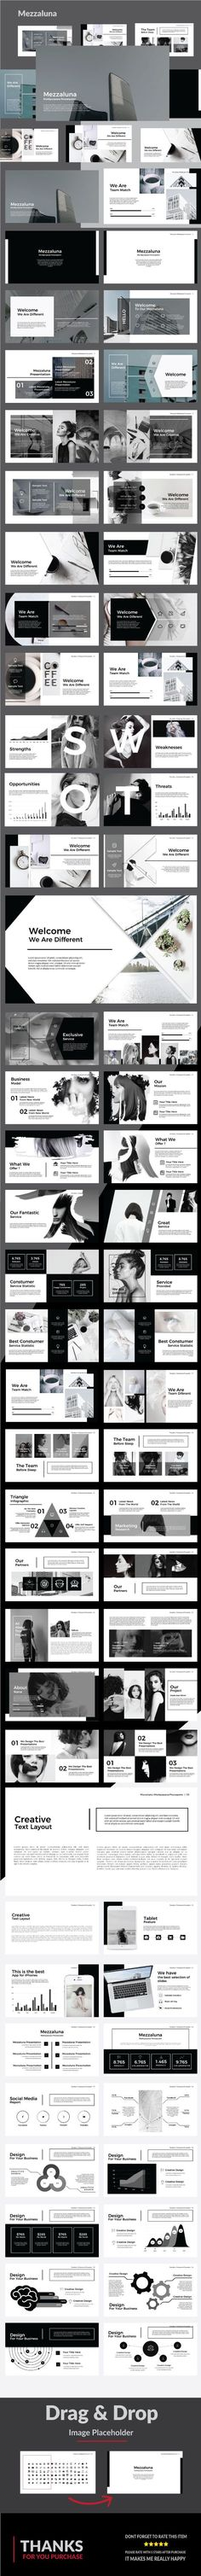 Buy Mezzaluna - Keynote Template by Sina_Studio on GraphicRiver. Images Placeholder Drag and Drop Image Theme Colour Option, Easy to change colors, Fully editable text, photos, musi. Ppt Design, Slide Design, Brochure Design, Layout Design, Graphic Design, Keynote Design, Book Presentation, Presentation Templates, Magazine Design Inspiration